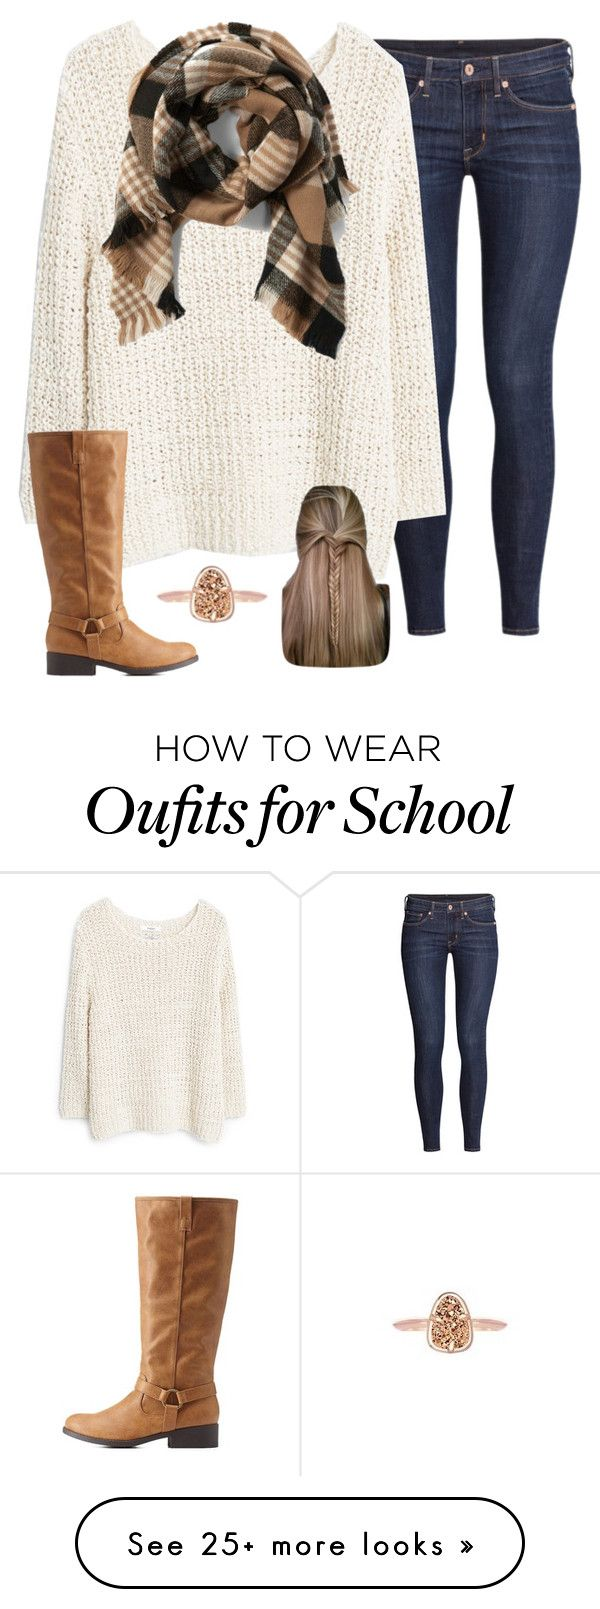 """I'm about done with school."" by madelynprice on Polyvore featuring H&M, MANGO, Charlotte Russe, Abercrombie & Fitch and Kendra Scott"